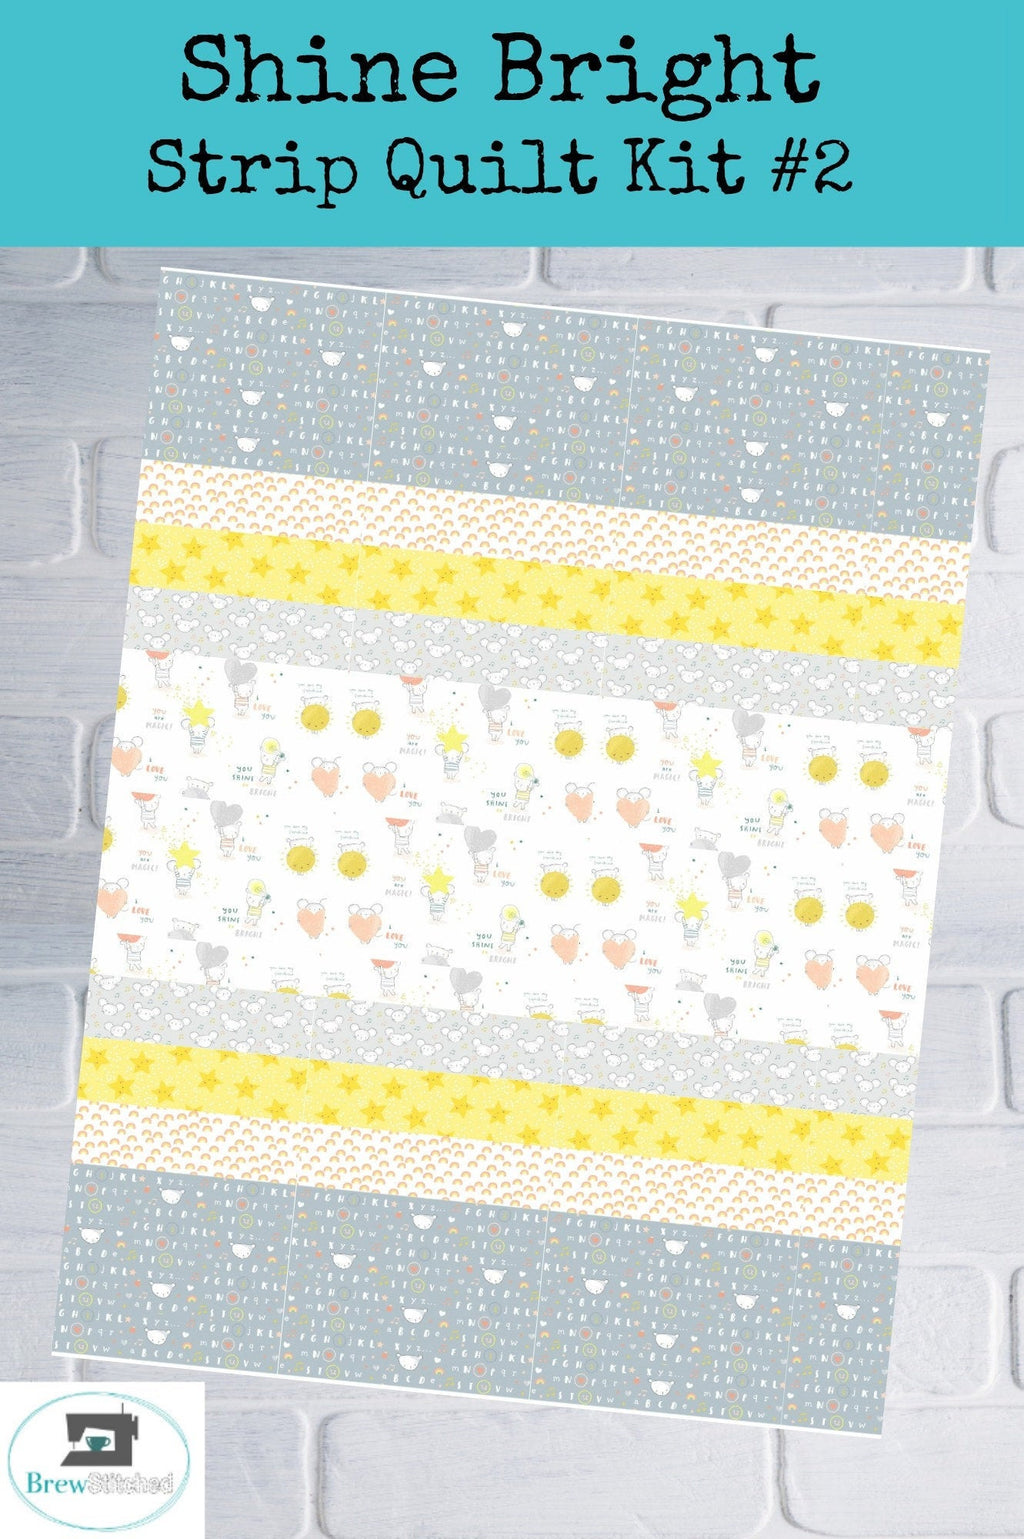 Shine Bright Baby Quilt Kit Option 2 - brewstitched.com